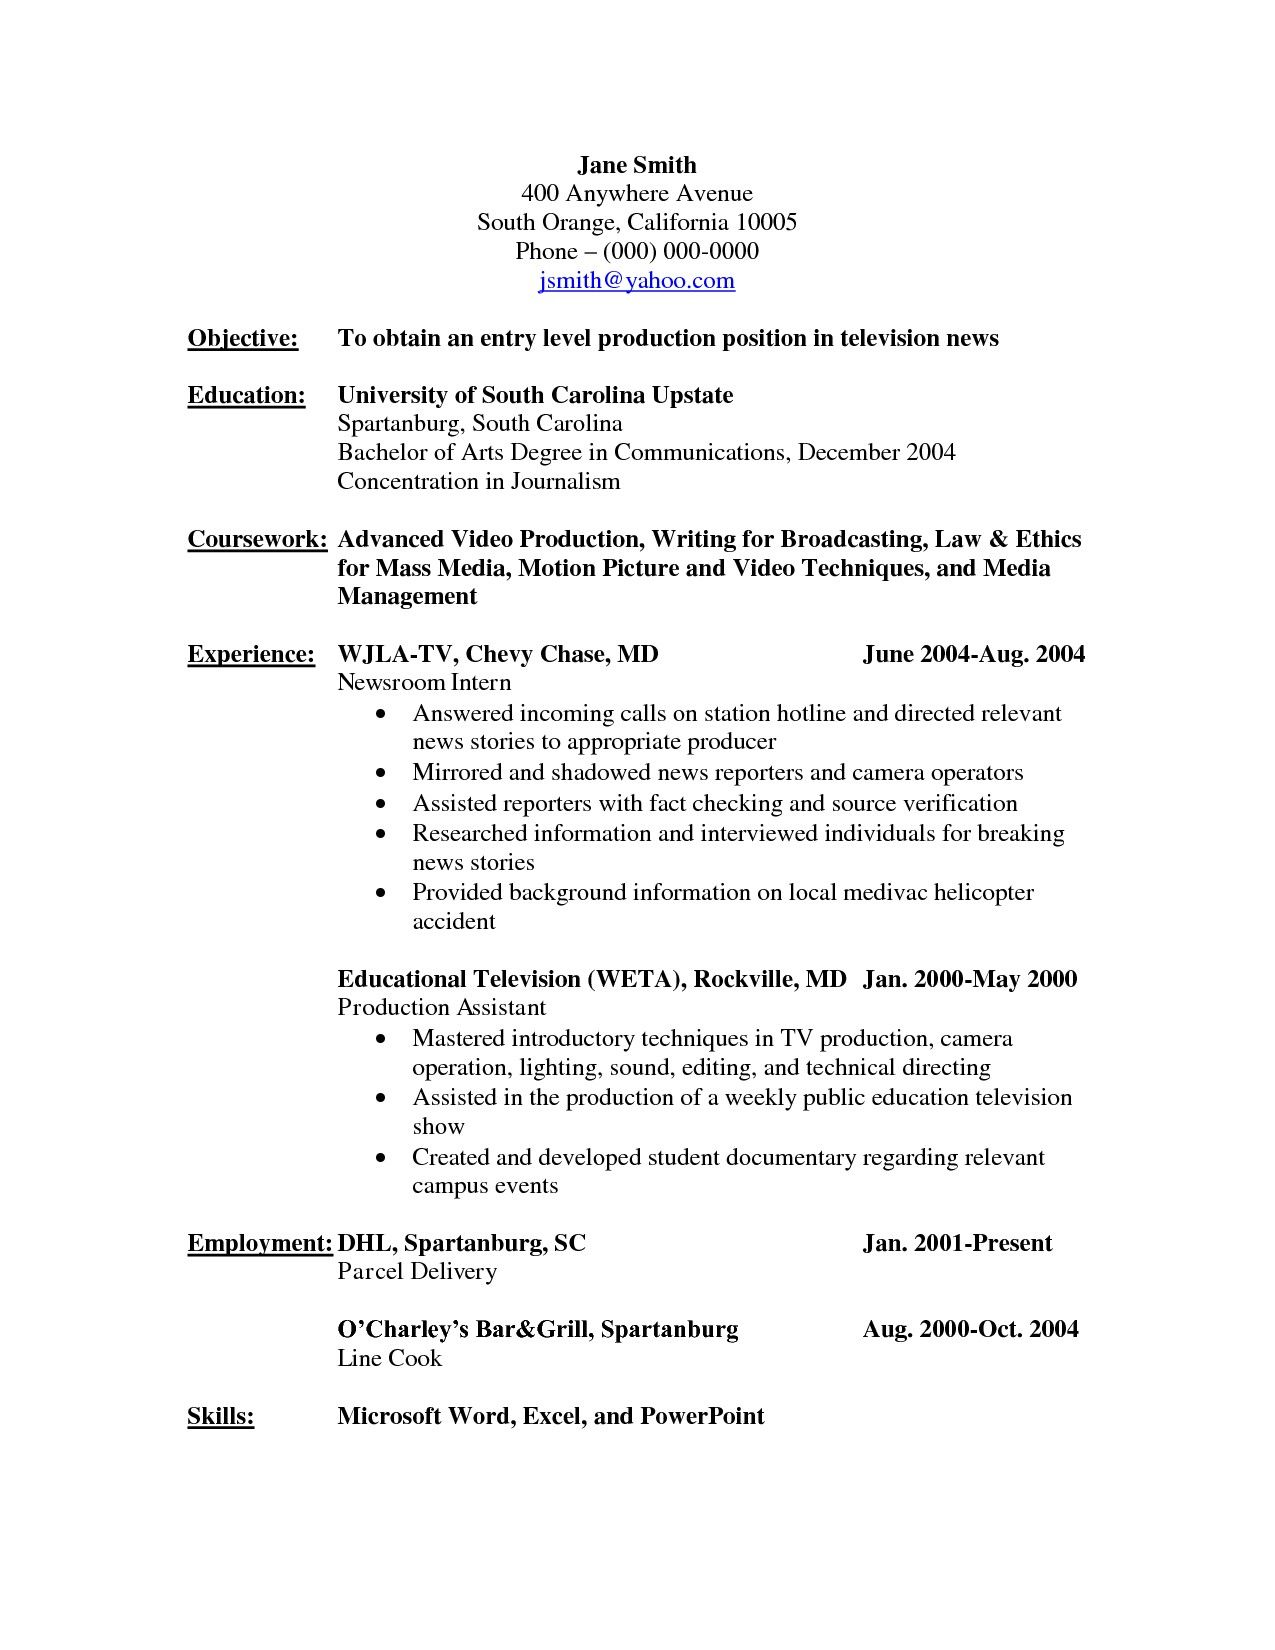 70 Cool Photos Of Resume Examples Media Production Check More At Https Www Ourpetscrawley Com 70 Cool Photos Of Resume Manager Resume Resume Resume Examples